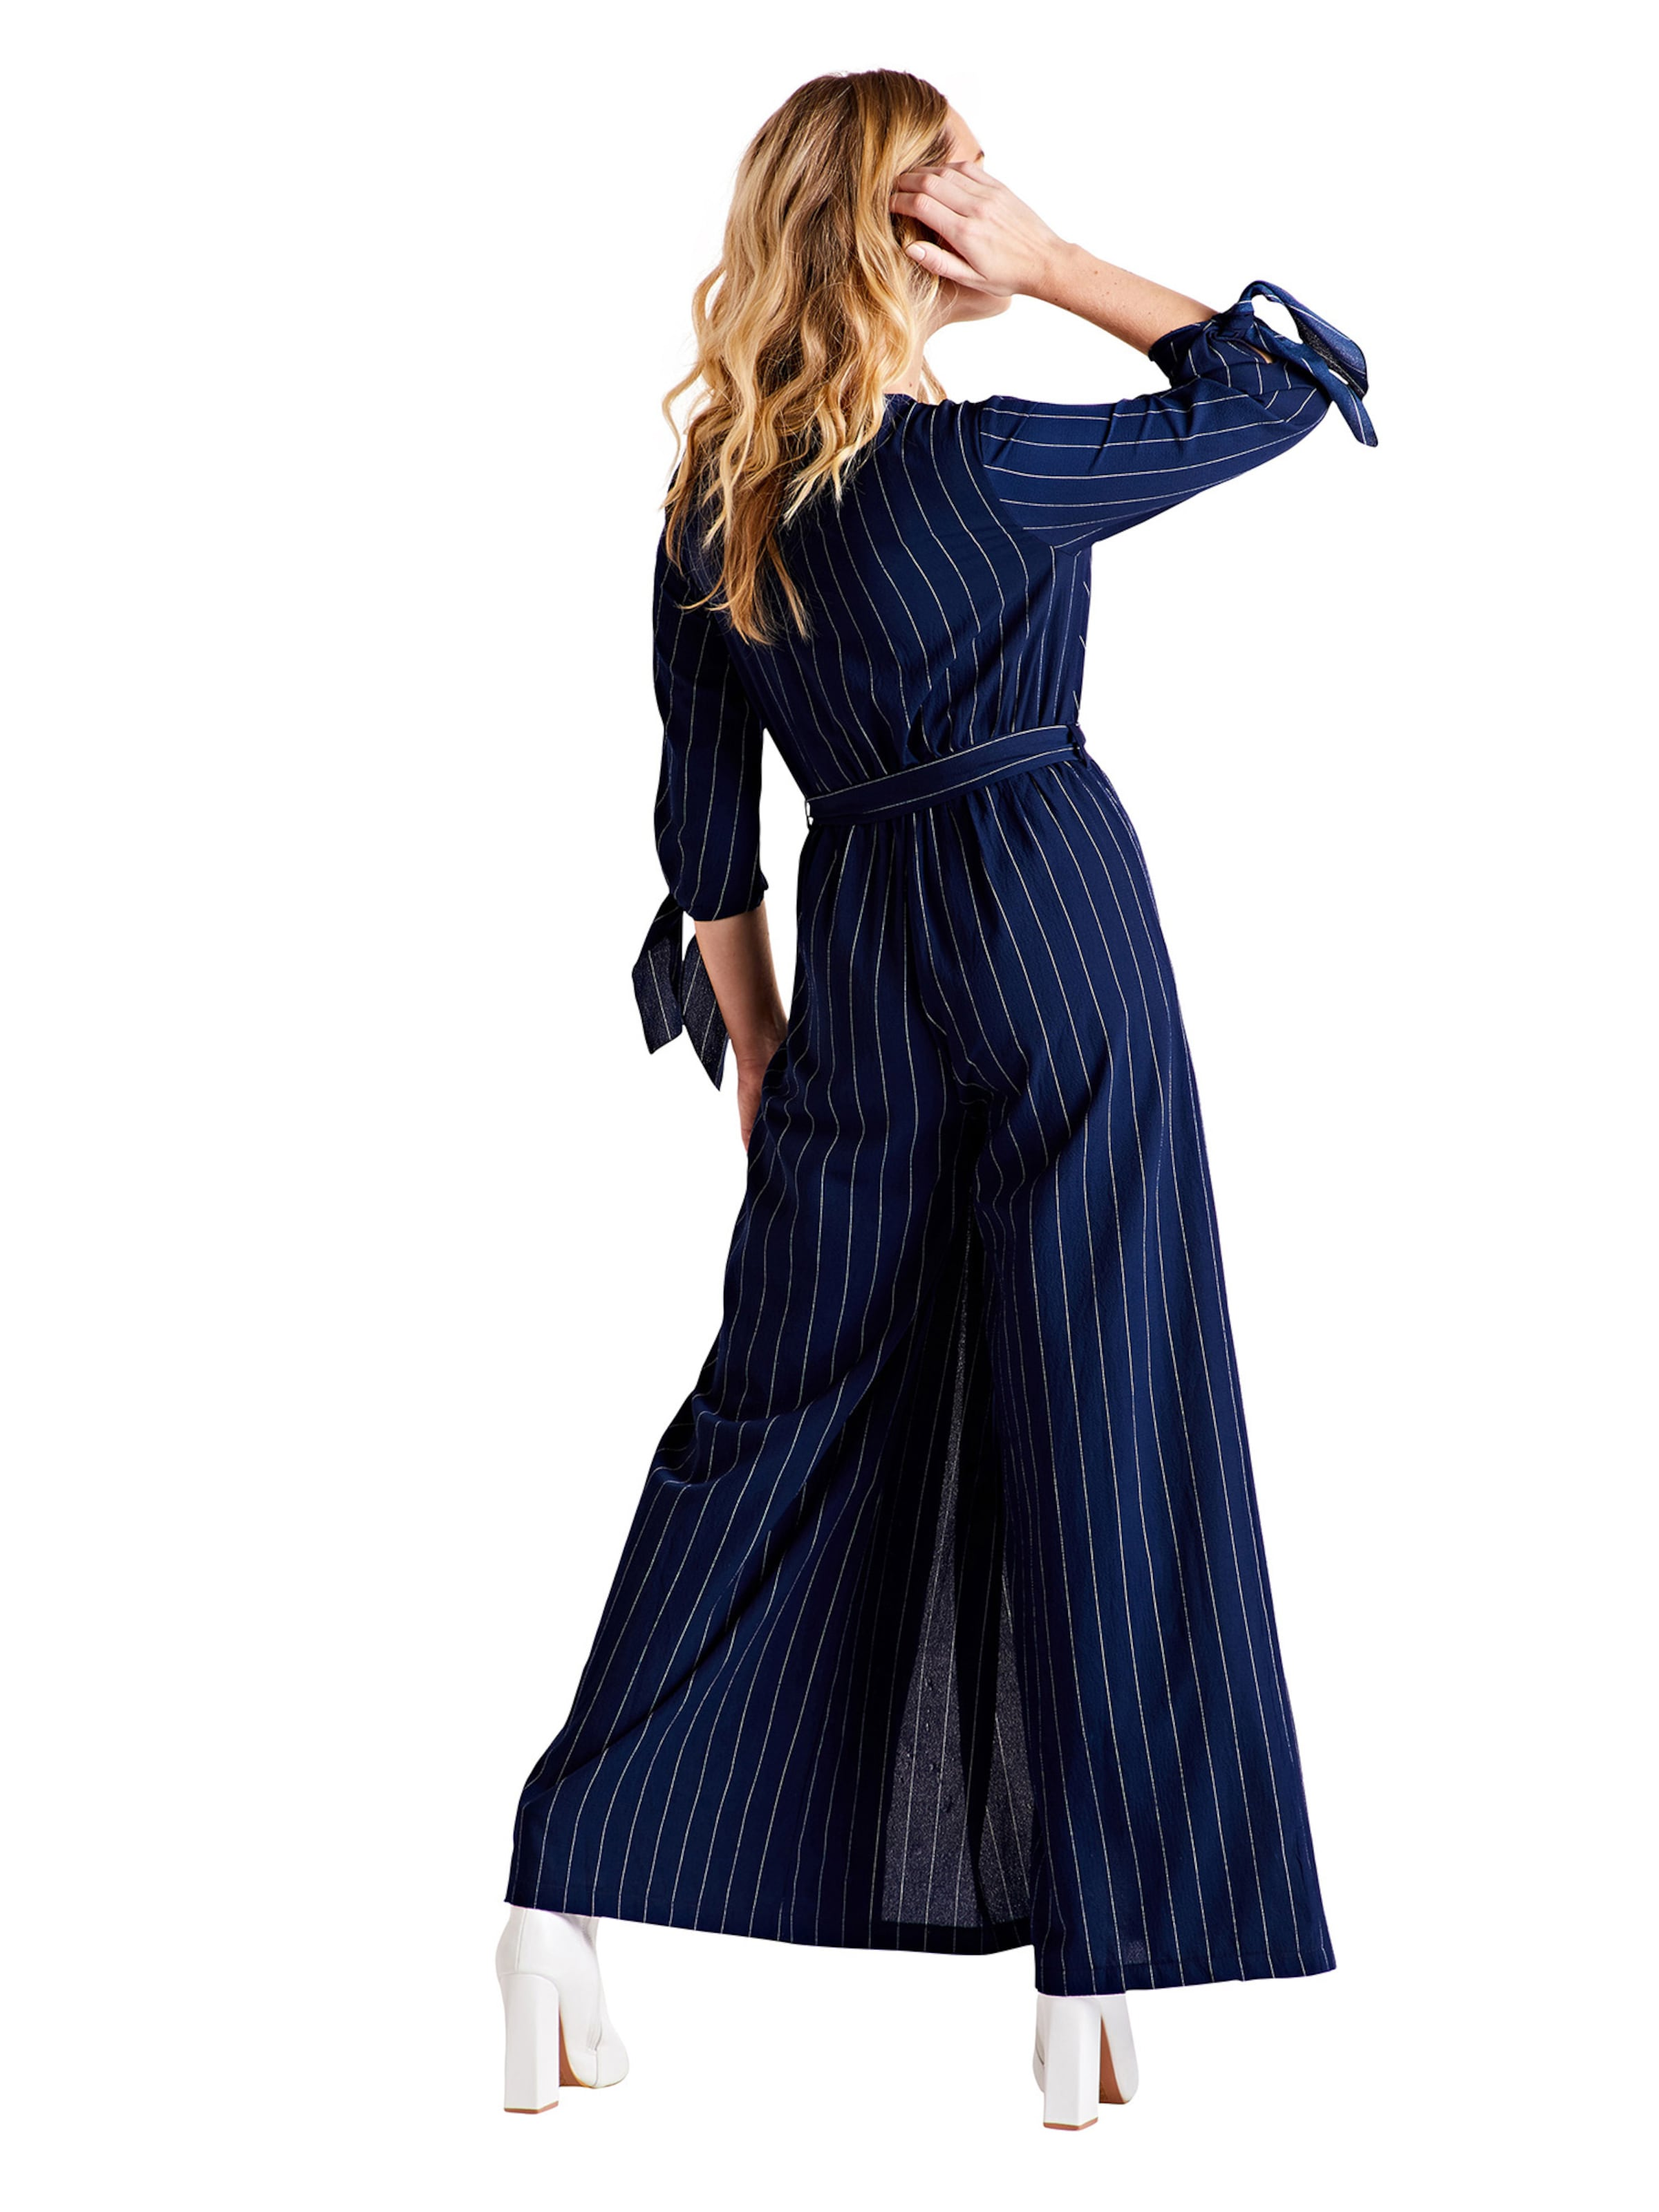 London Navy In Sleeve Overalls 'tie Jumpsuit' Mela L4Rjq5A3